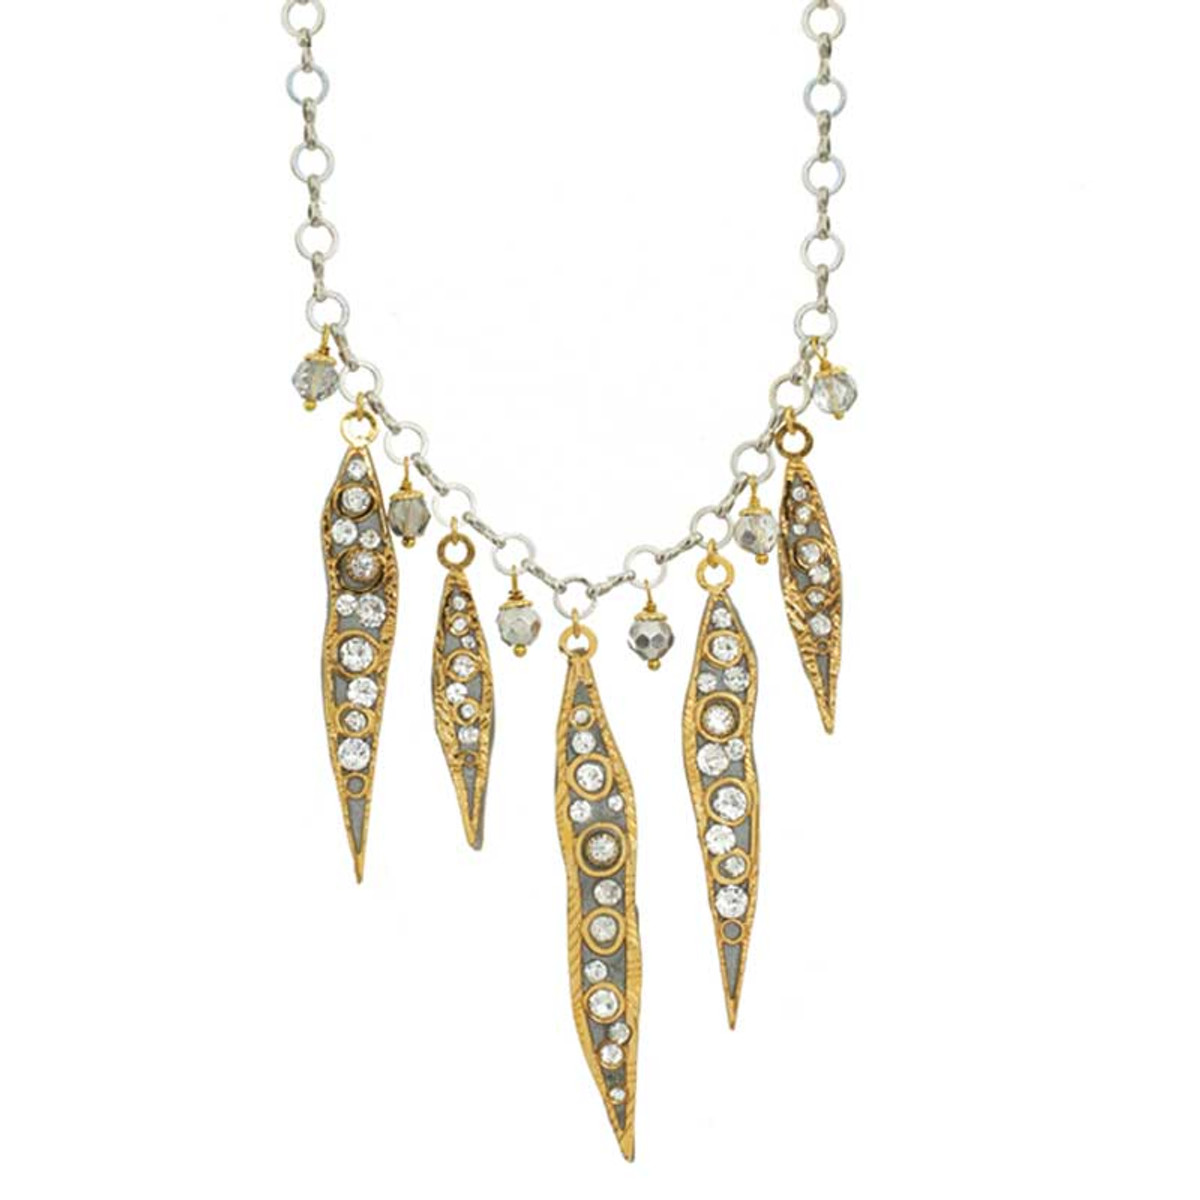 Michal Golan Icicle Style Necklaces